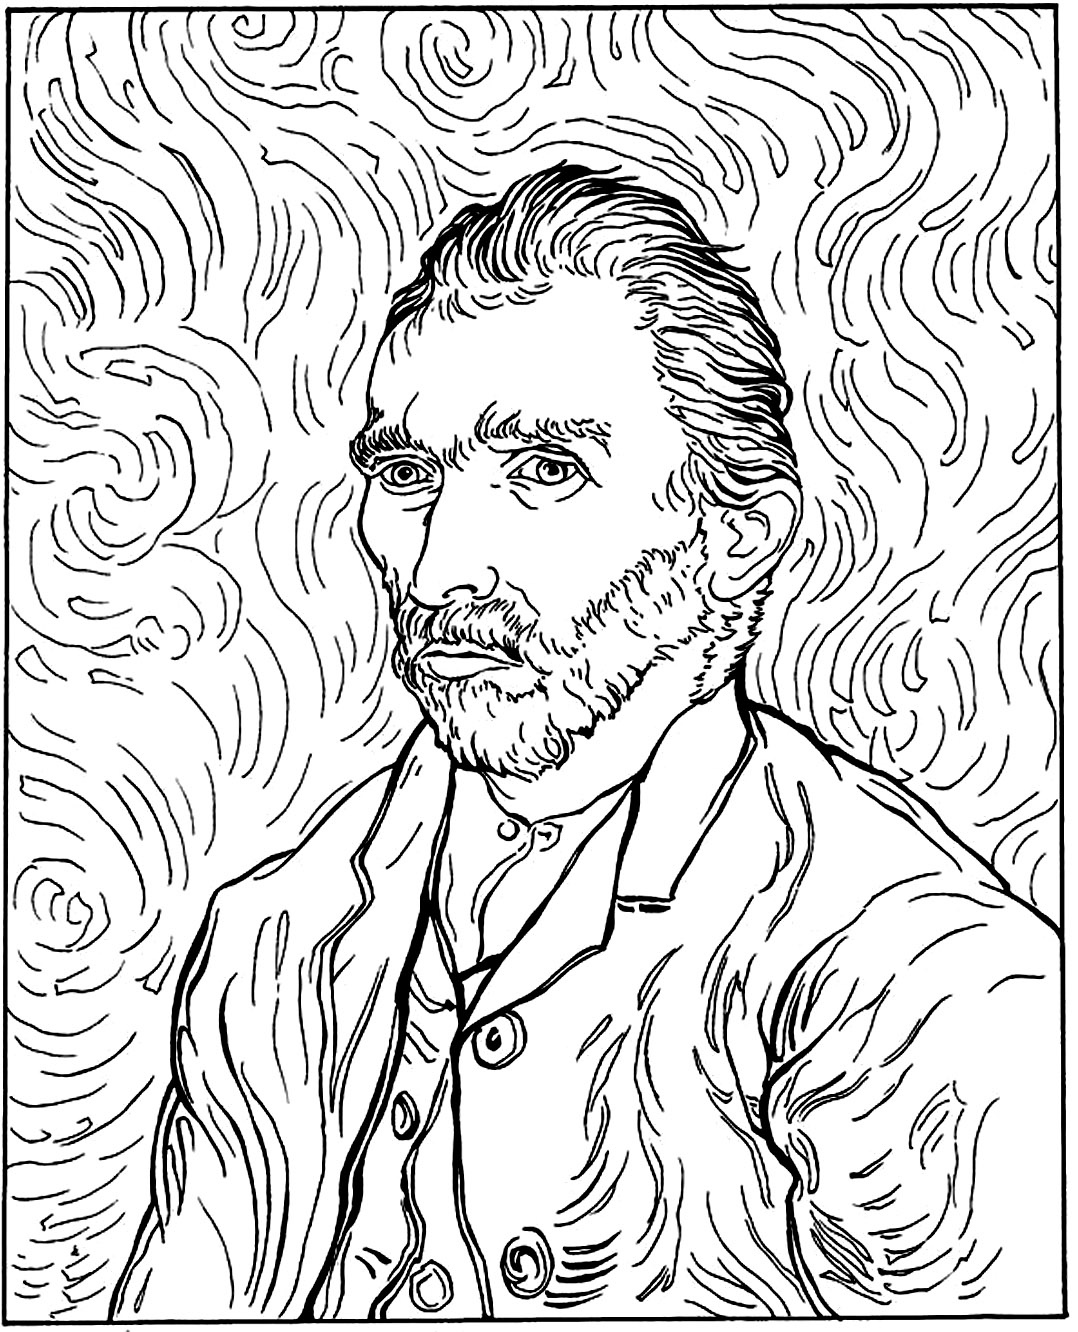 Van Gogh Coloring Pages Amusing Van Gogh Autoportrait  Masterpieces  Coloring Pages For Adults .